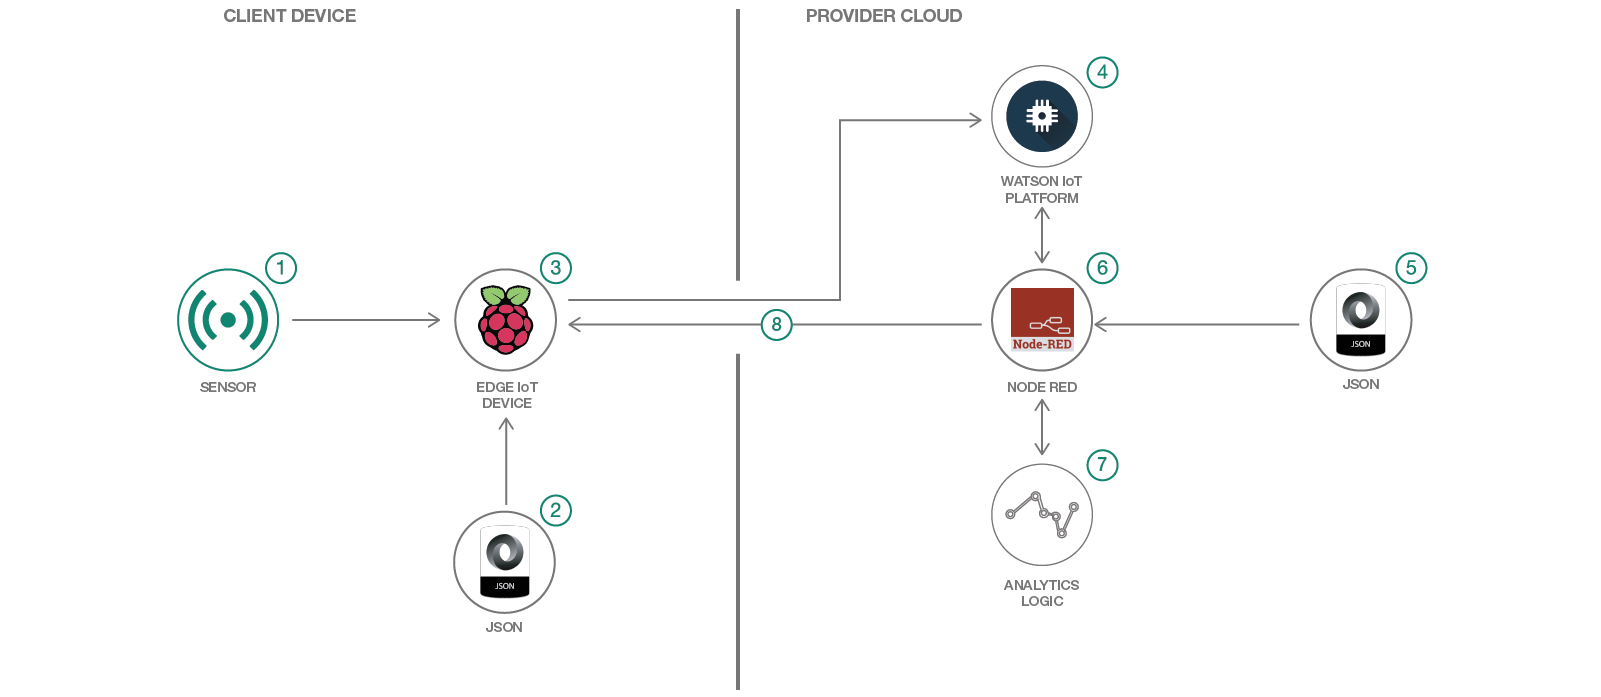 IoT Sensor Data – Take Actions on at the Edge based on